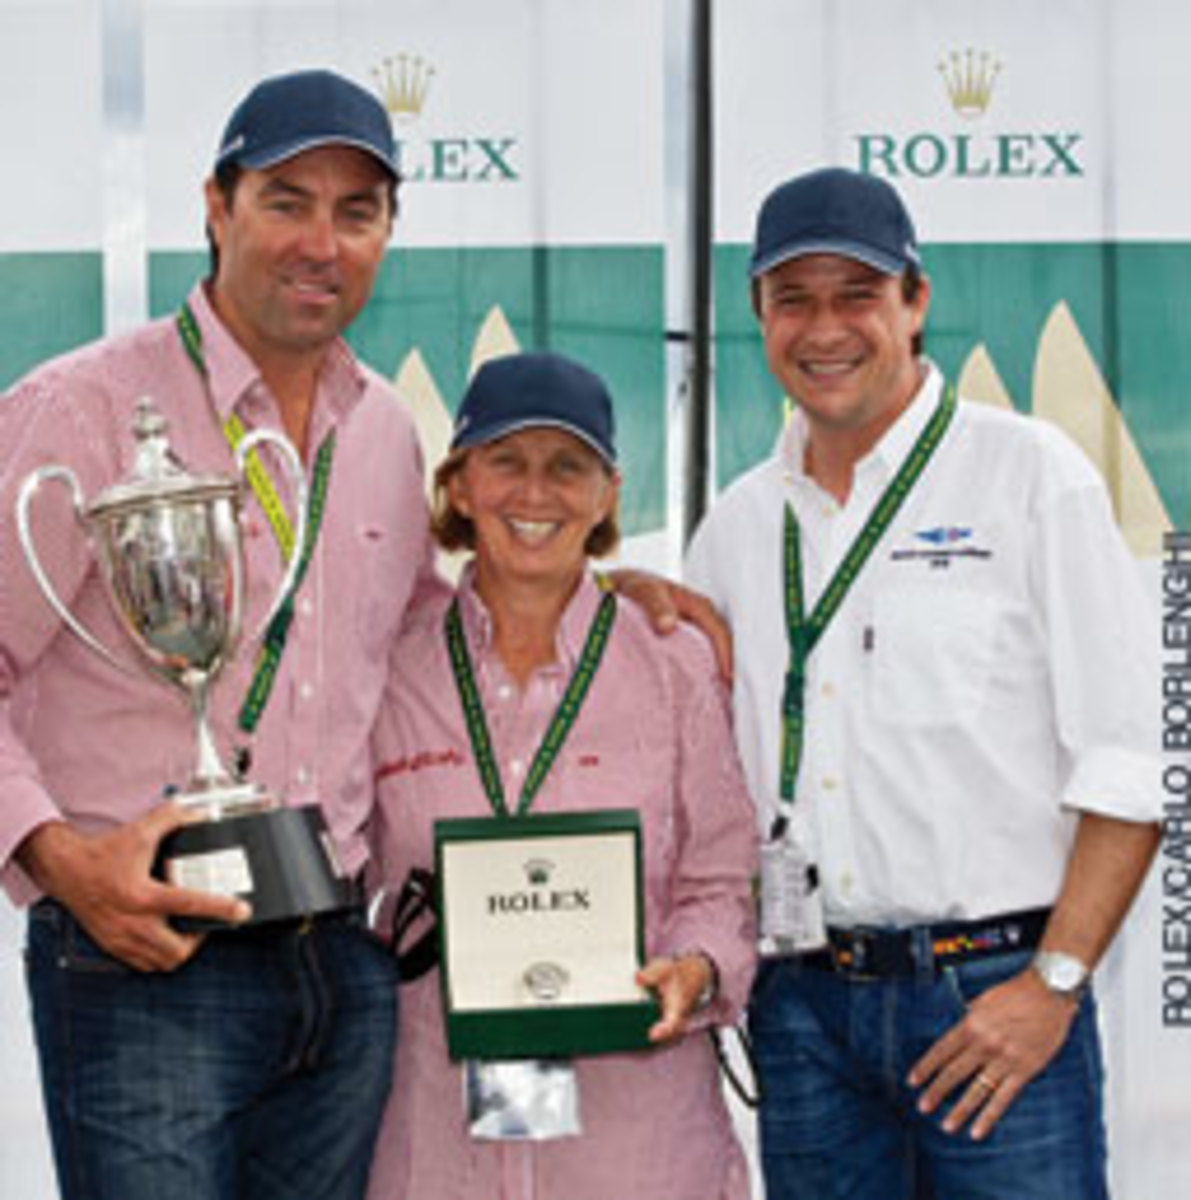 Line honors went to Wild Oats XI - (from left) skipper Mark Richards, co-navigator Adrienne Cahalan and Patrick Boutellier of Rolex Australia.